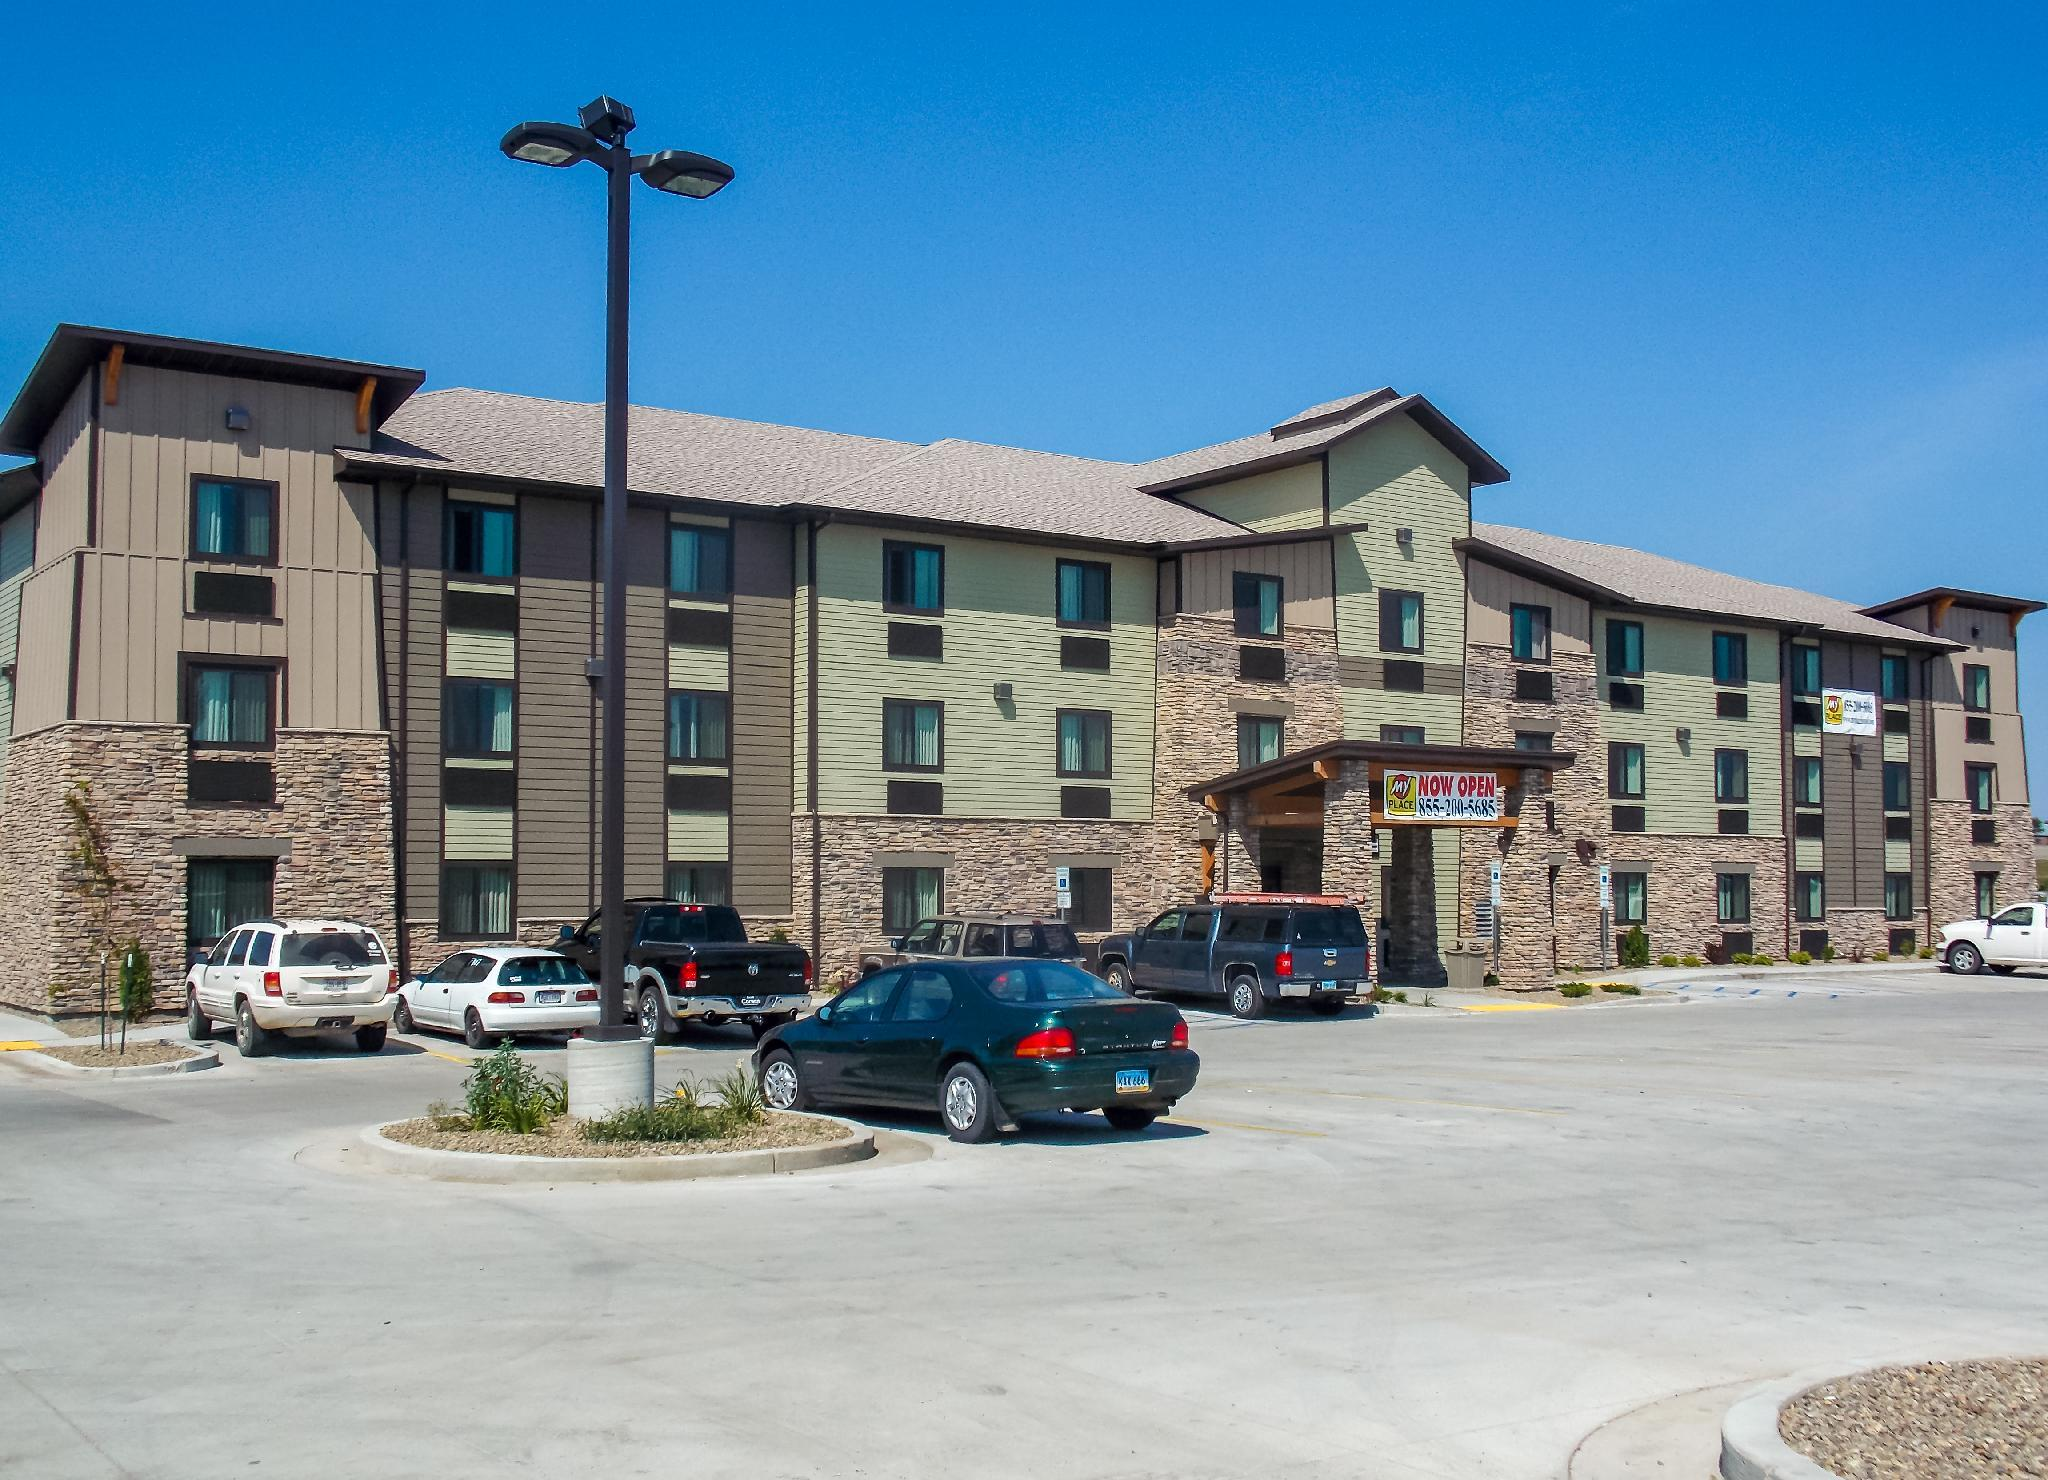 My Place Hotel Bismarck ND